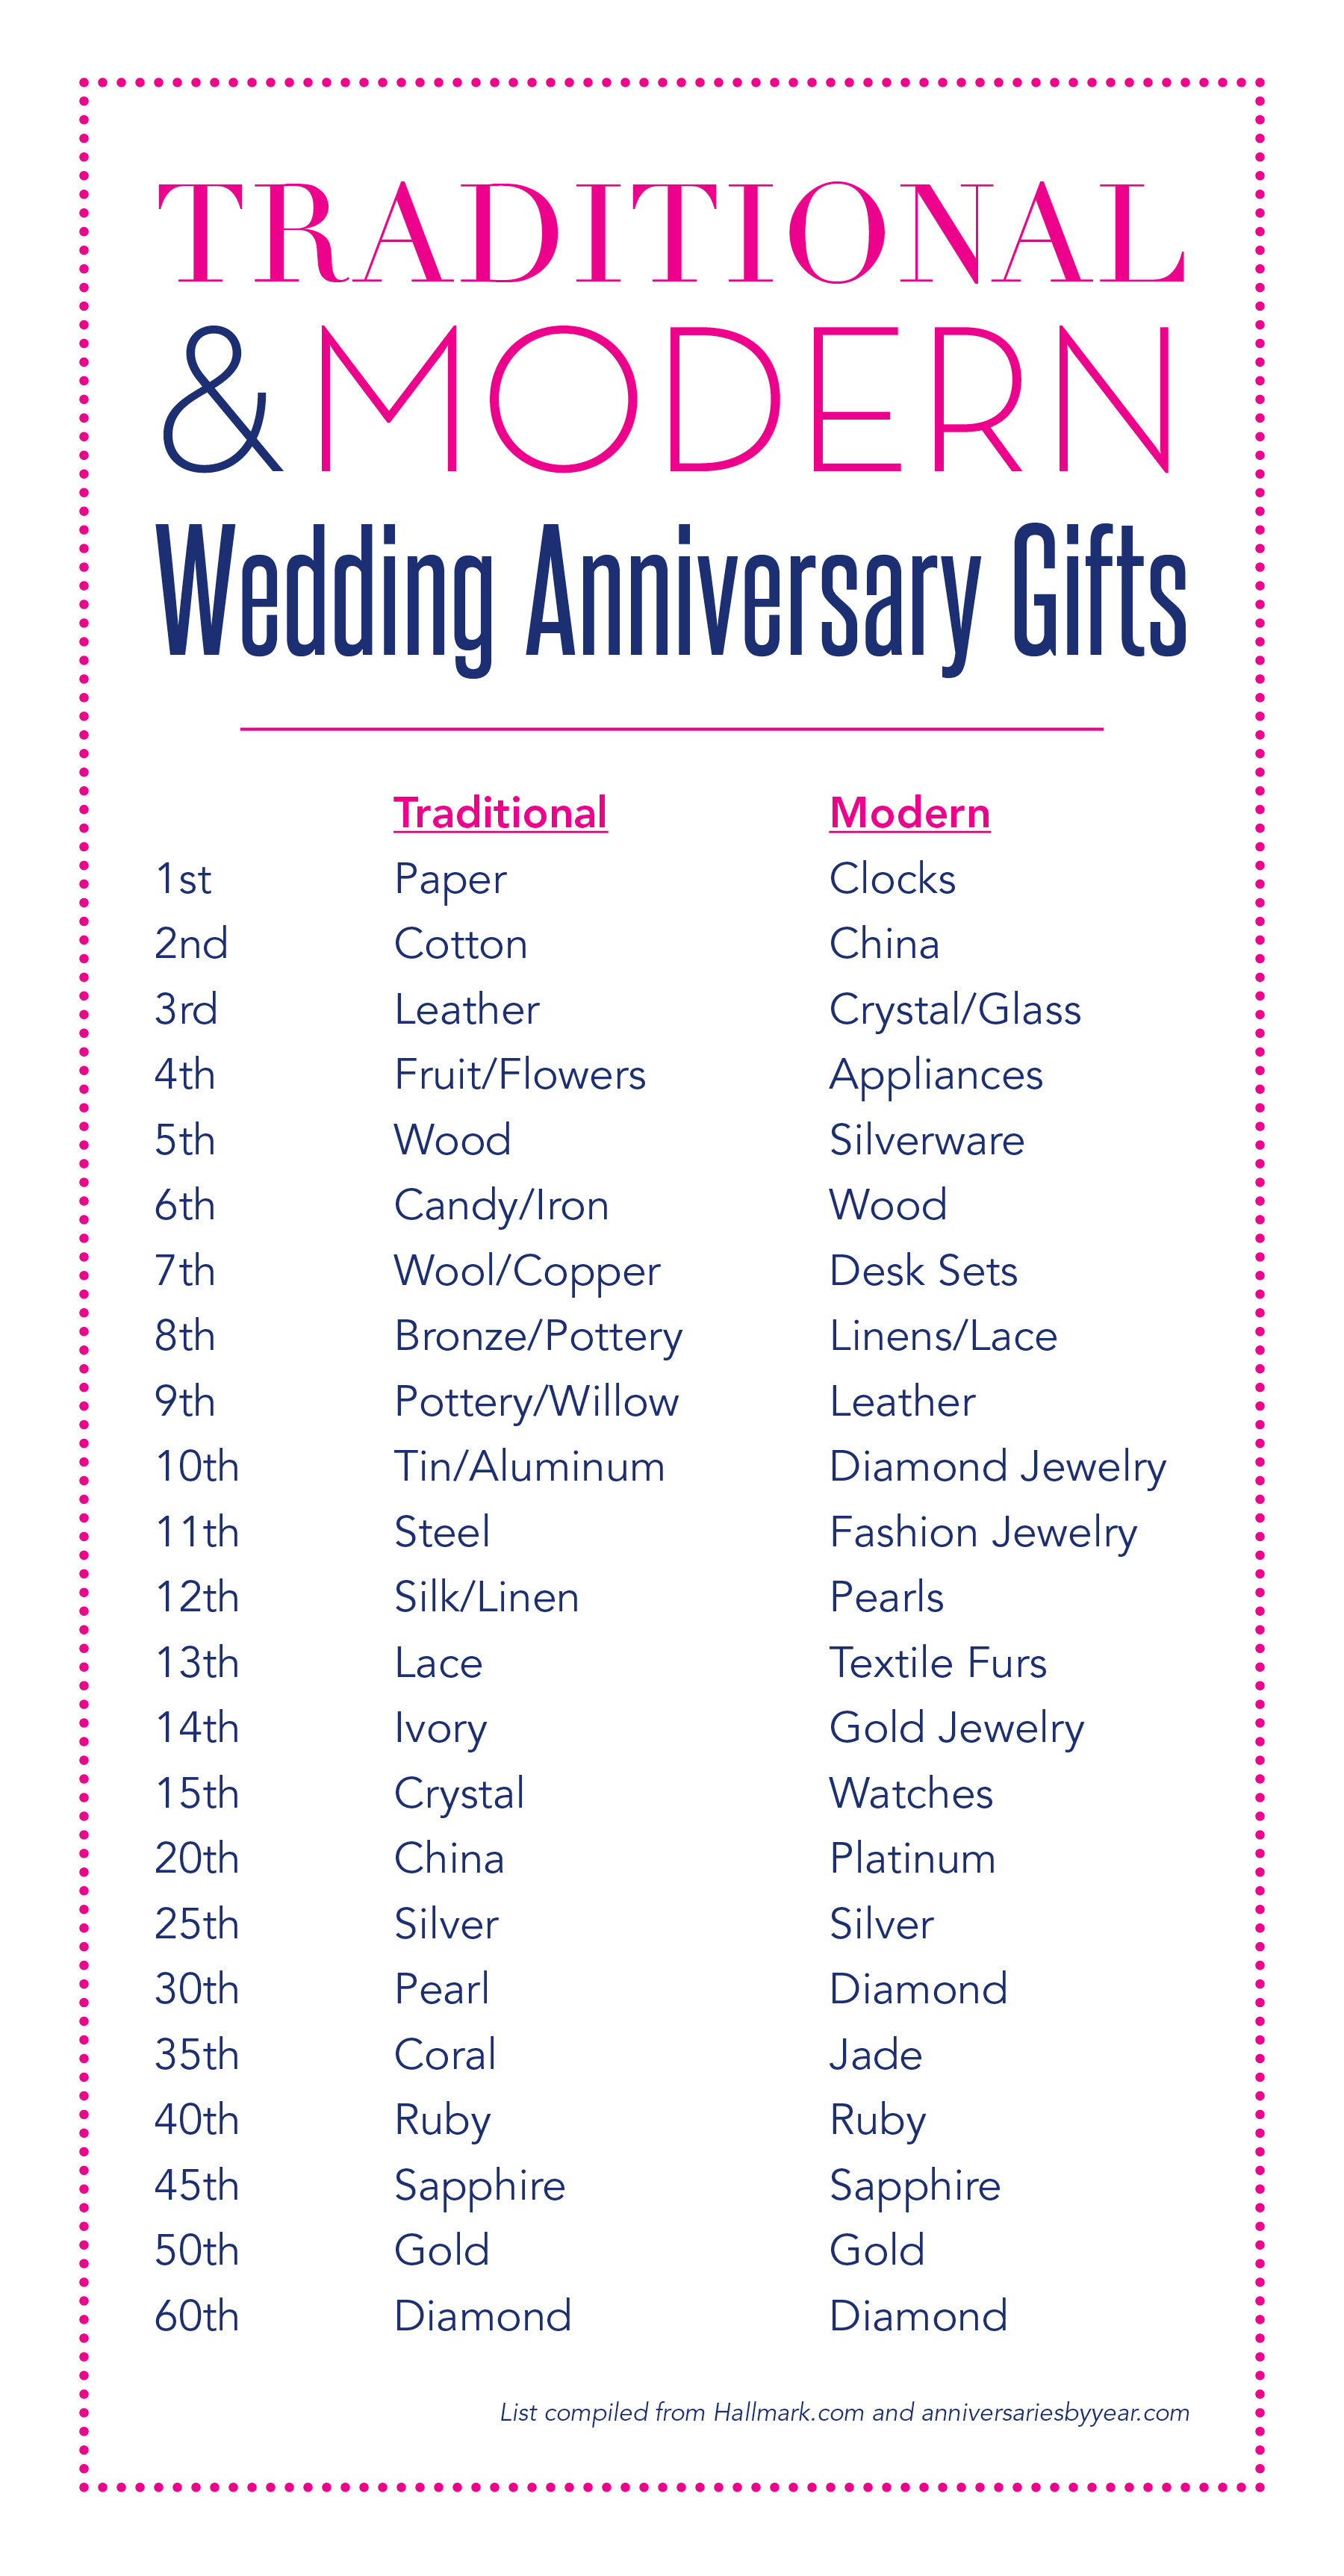 List Of Traditional Wedding Anniversary Gifts For Each Year : wedding anniversary gifts (traditional & modern)